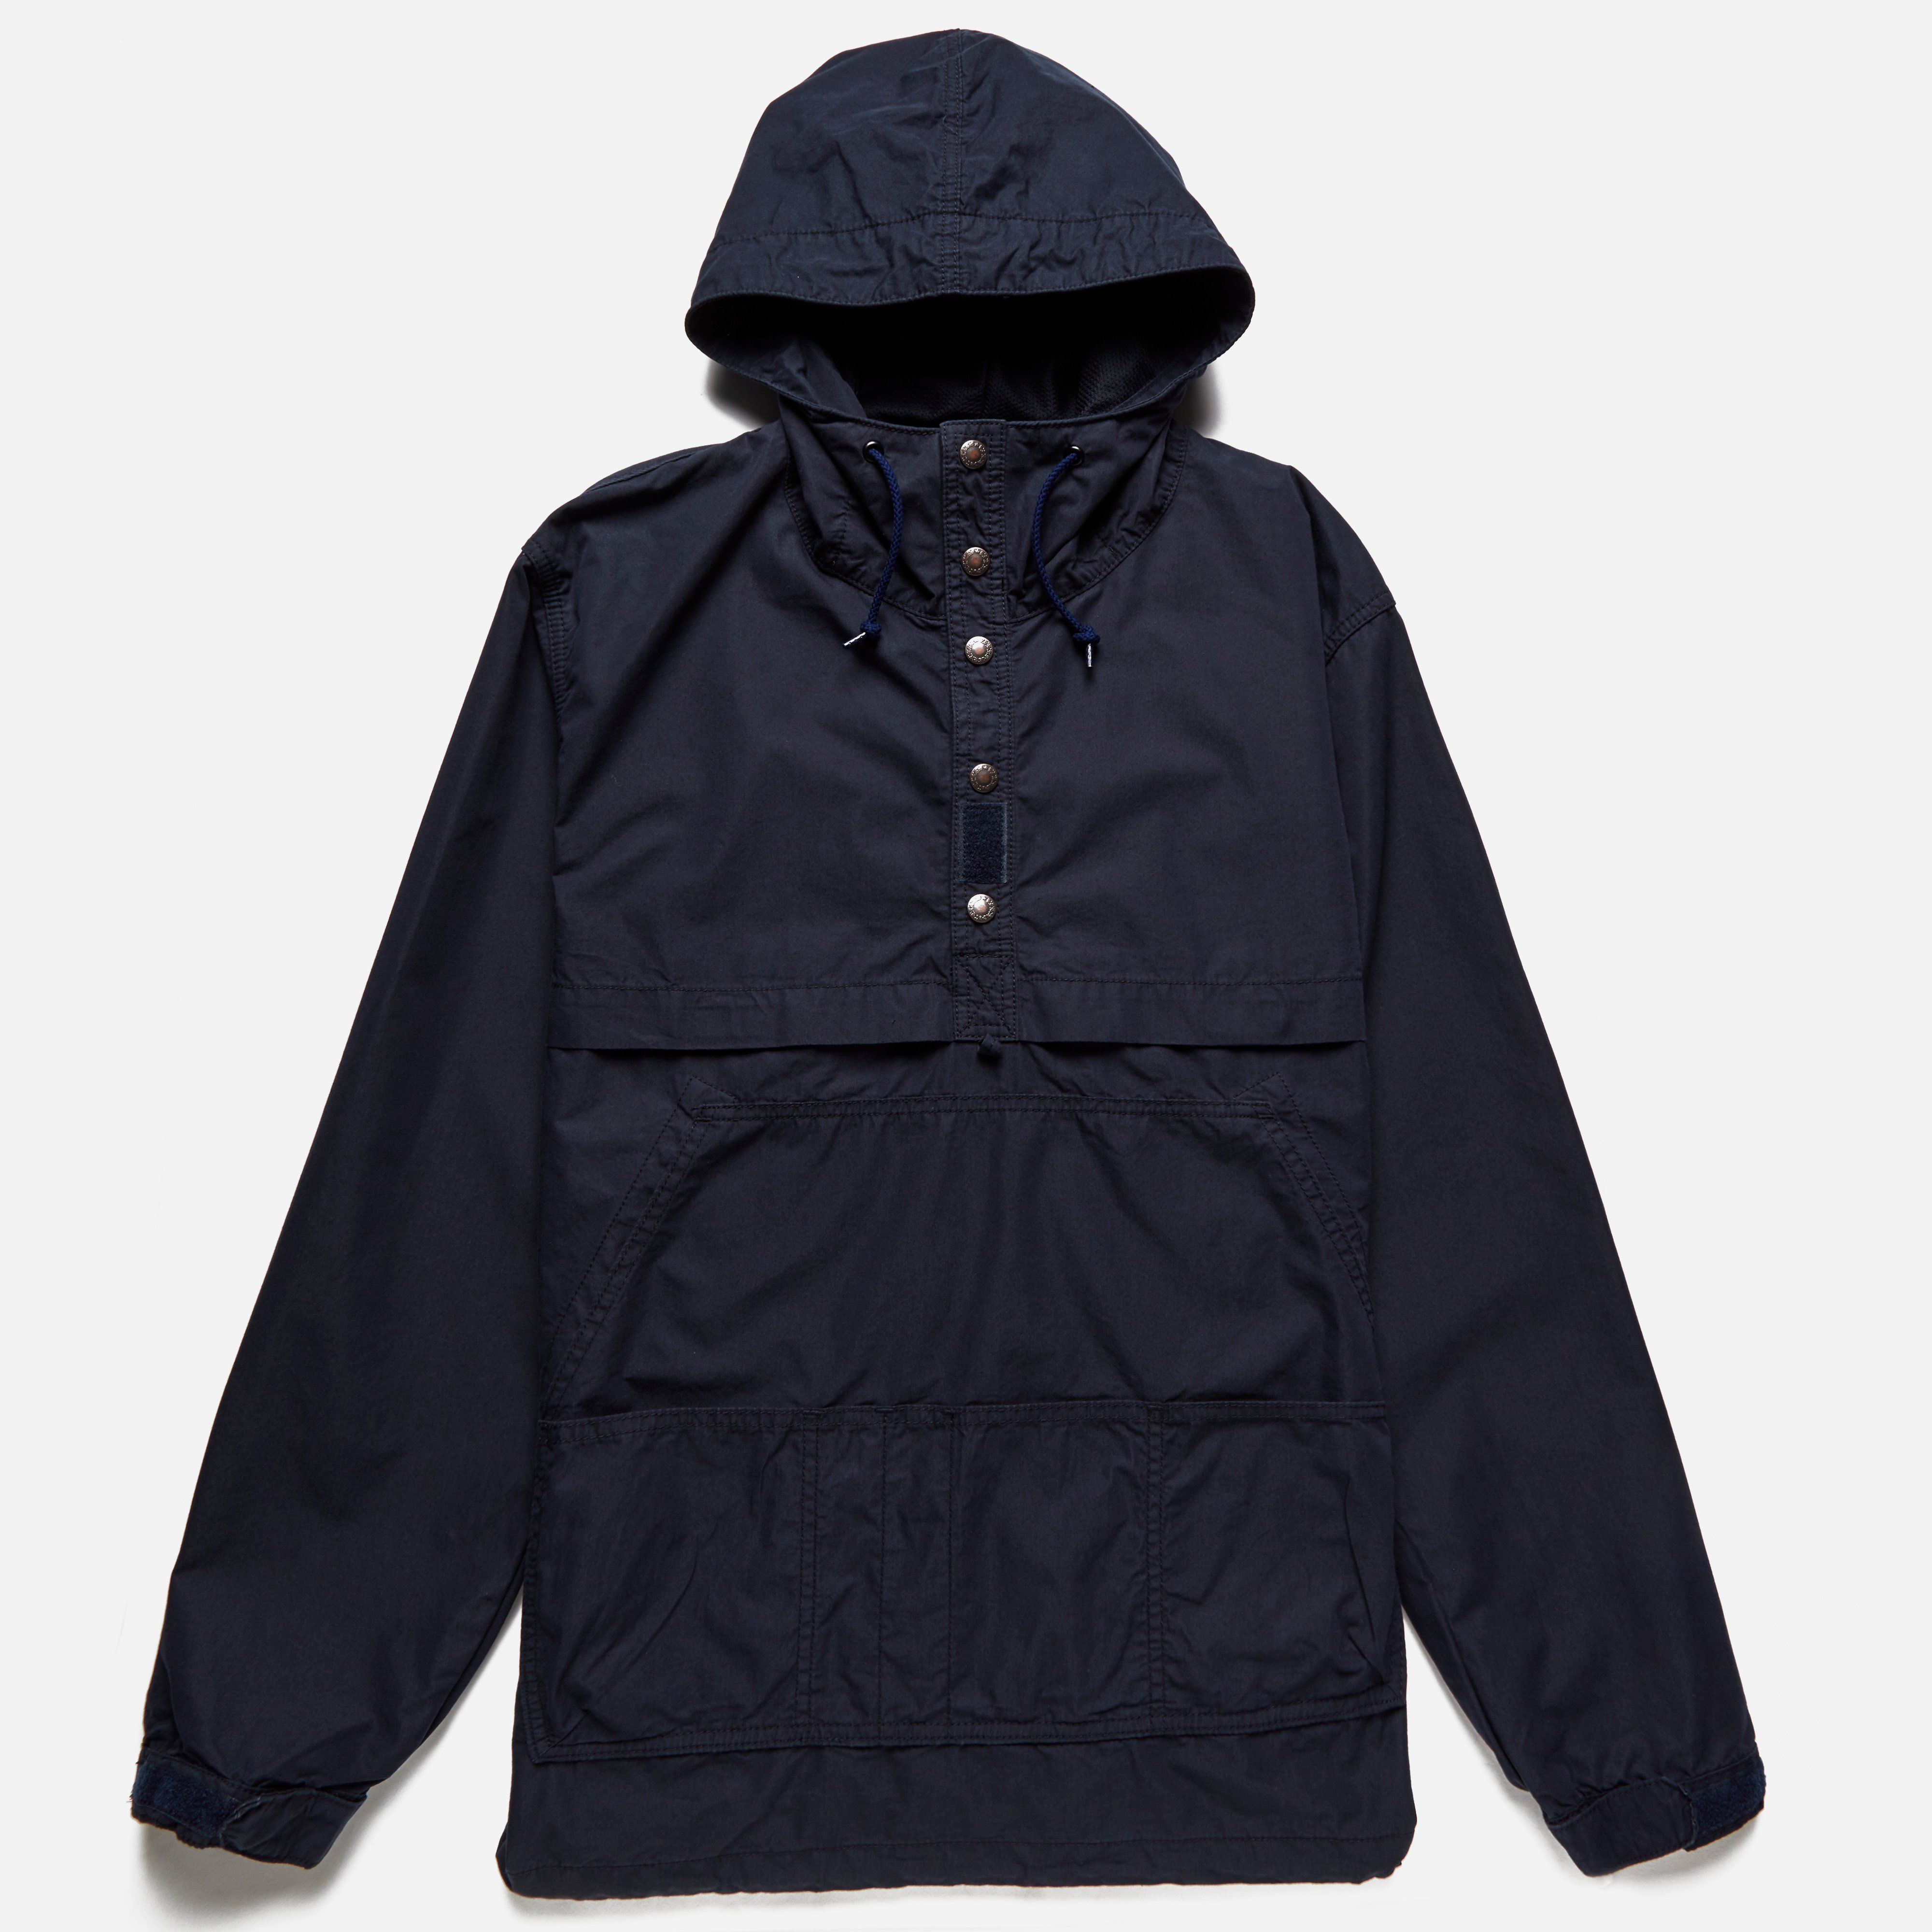 Manastash OD Lumber Jacket